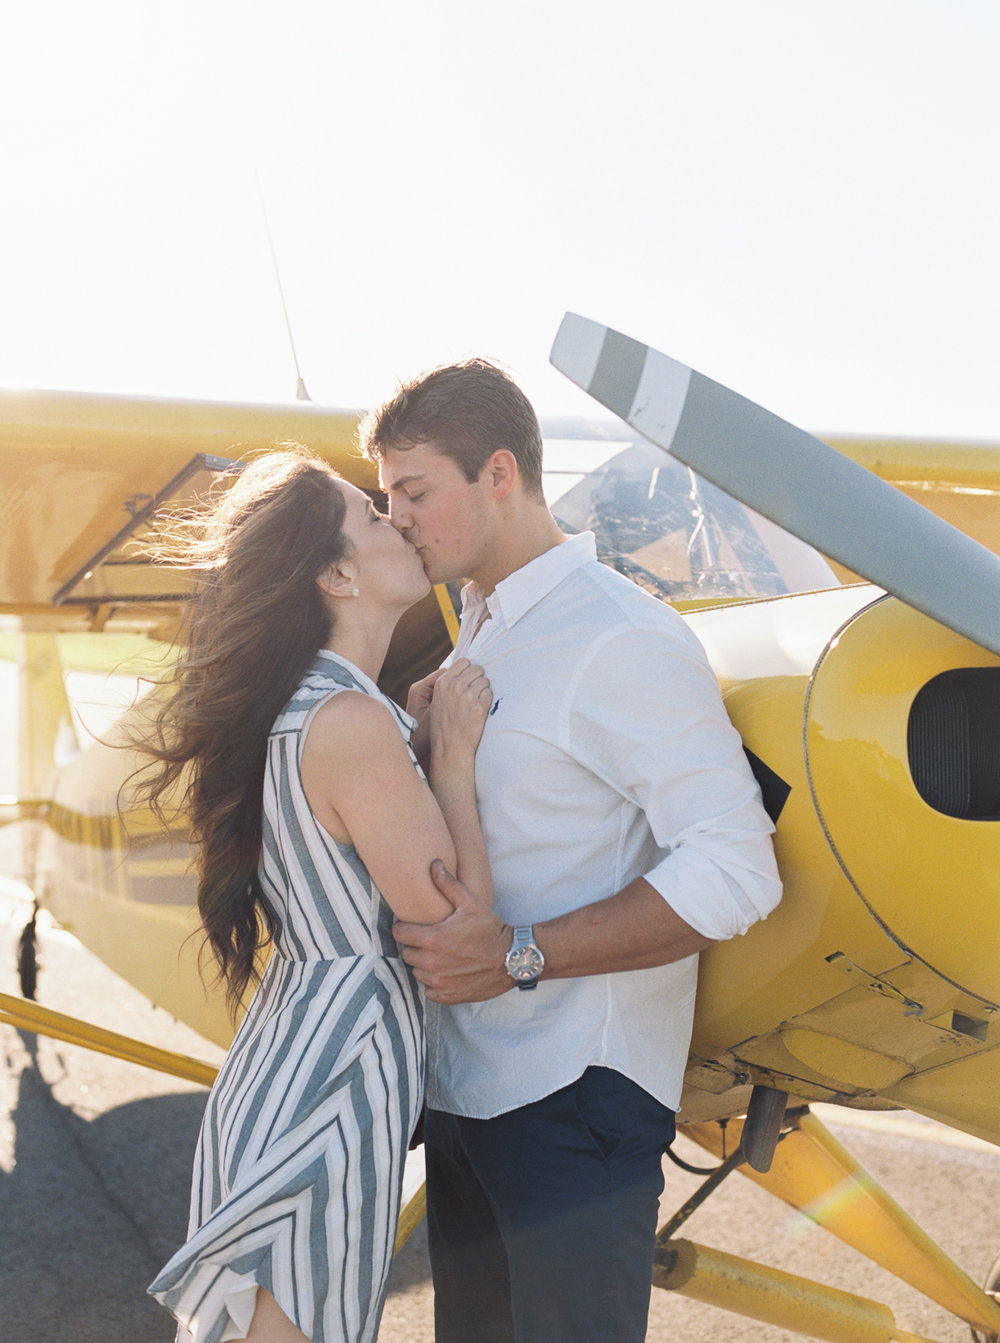 lianna + chuck airplane engagement session ©2017abigailbobophotography-16.jpg